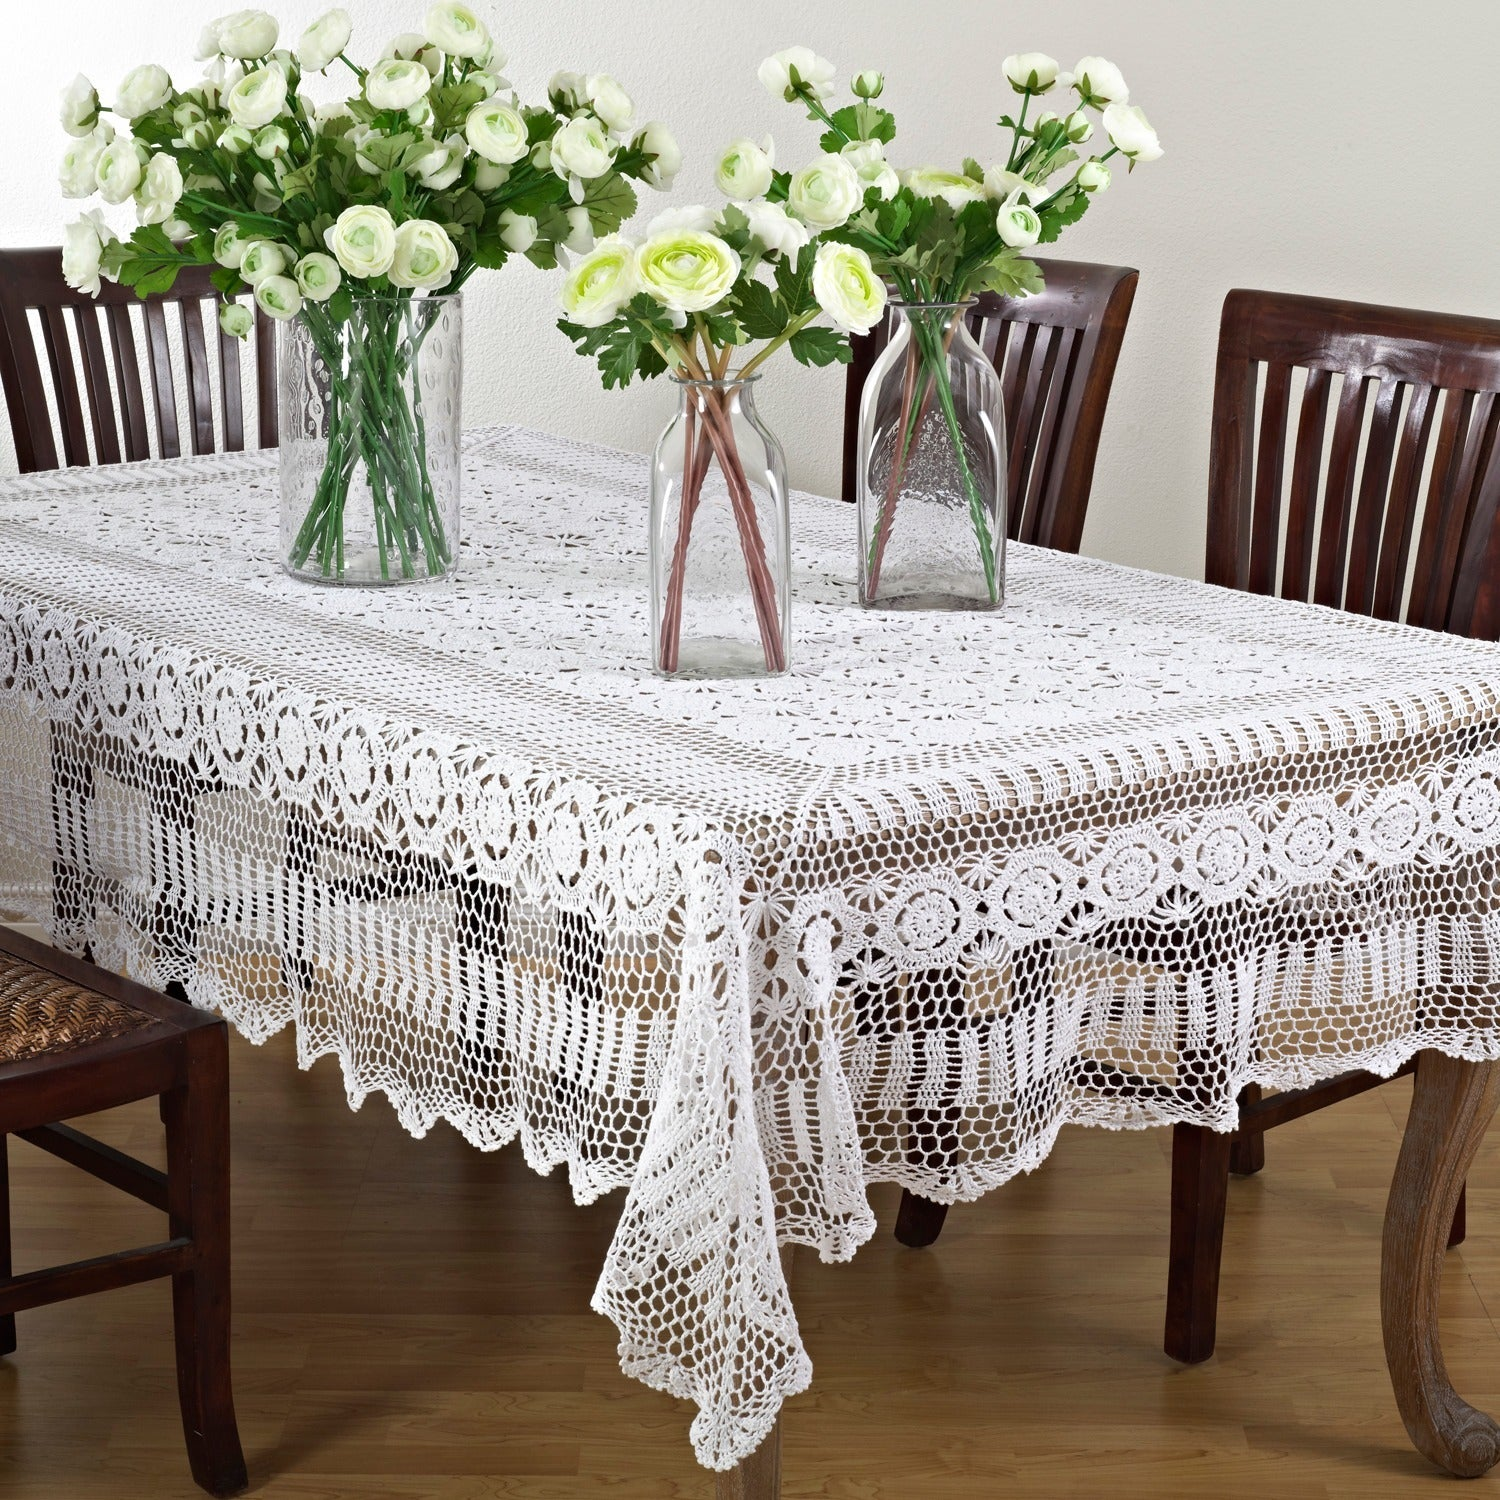 Charmant Shop Handmade Crochet Cotton Lace Table Linens   On Sale   Free Shipping On  Orders Over $45   Overstock.com   8718788